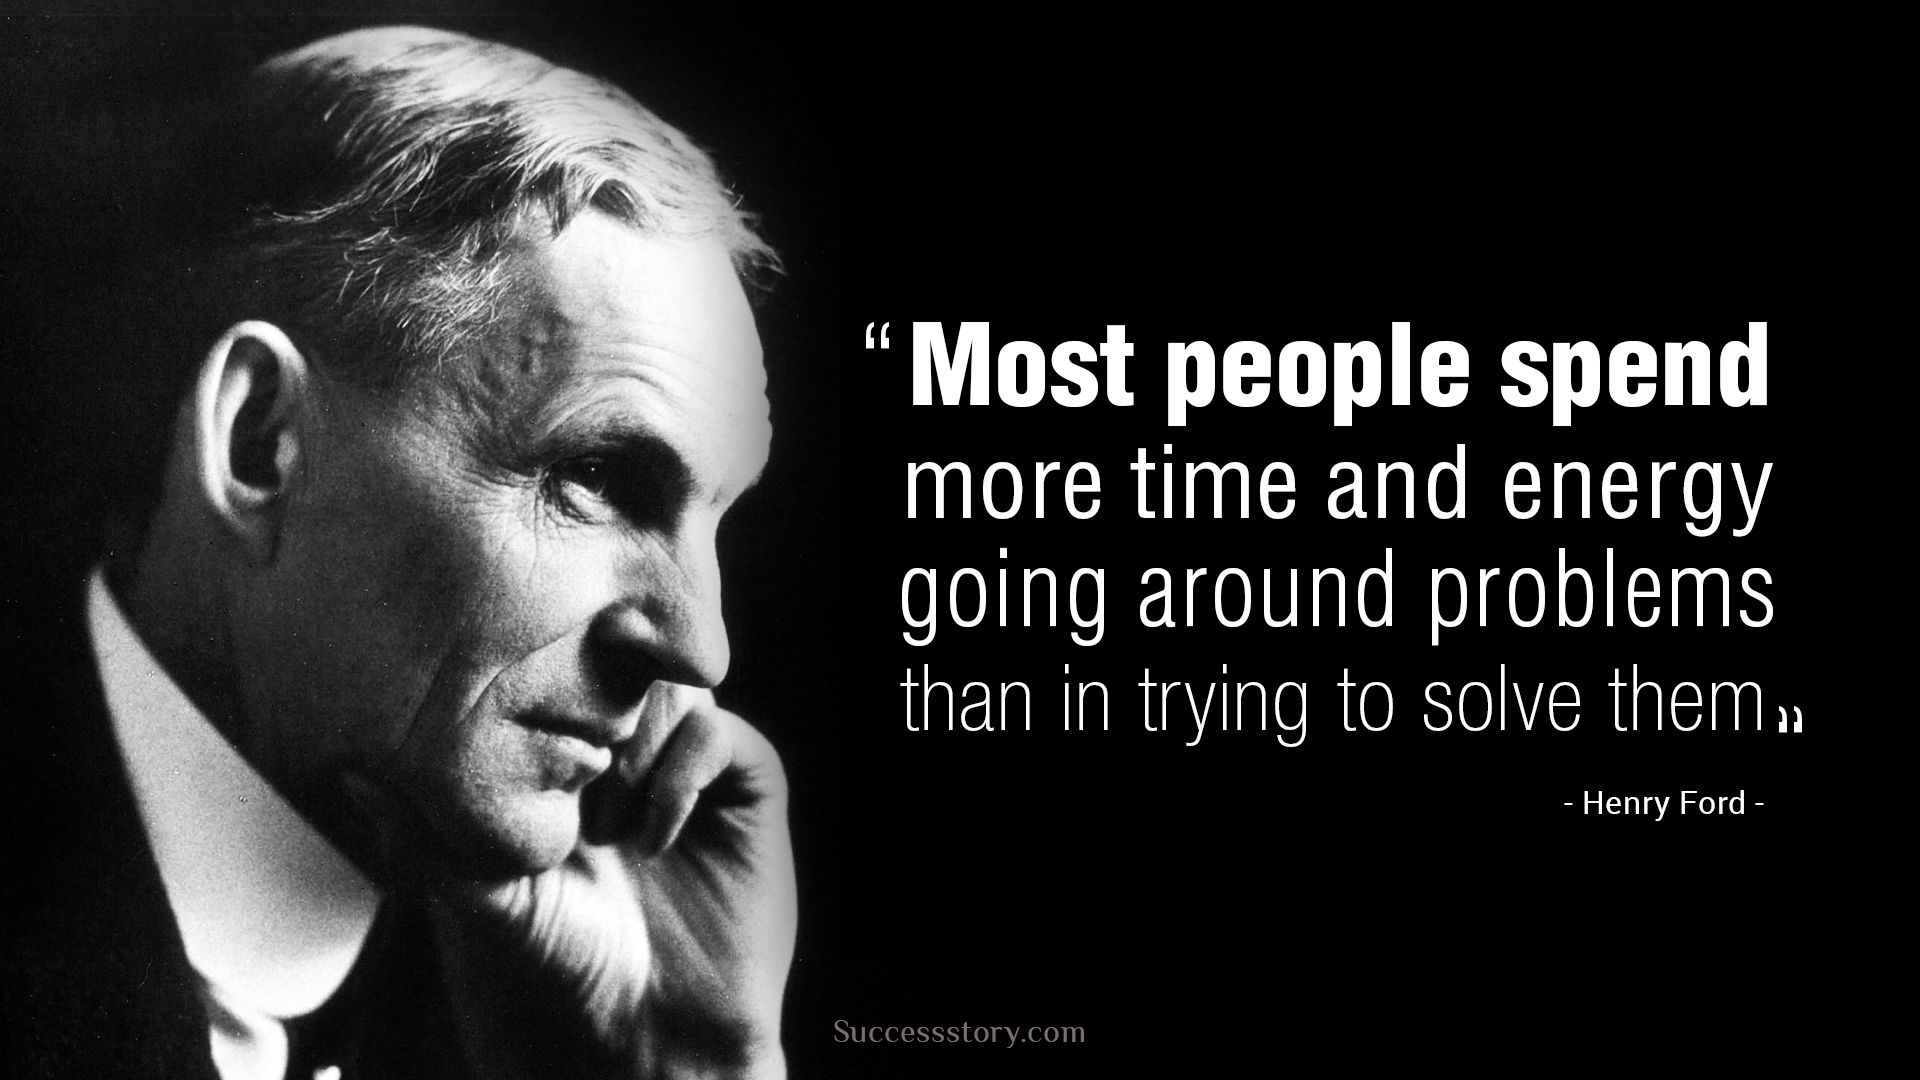 Ford Quote What Is Your Favorite Henry Ford Quote  Daily Posts  Pinterest